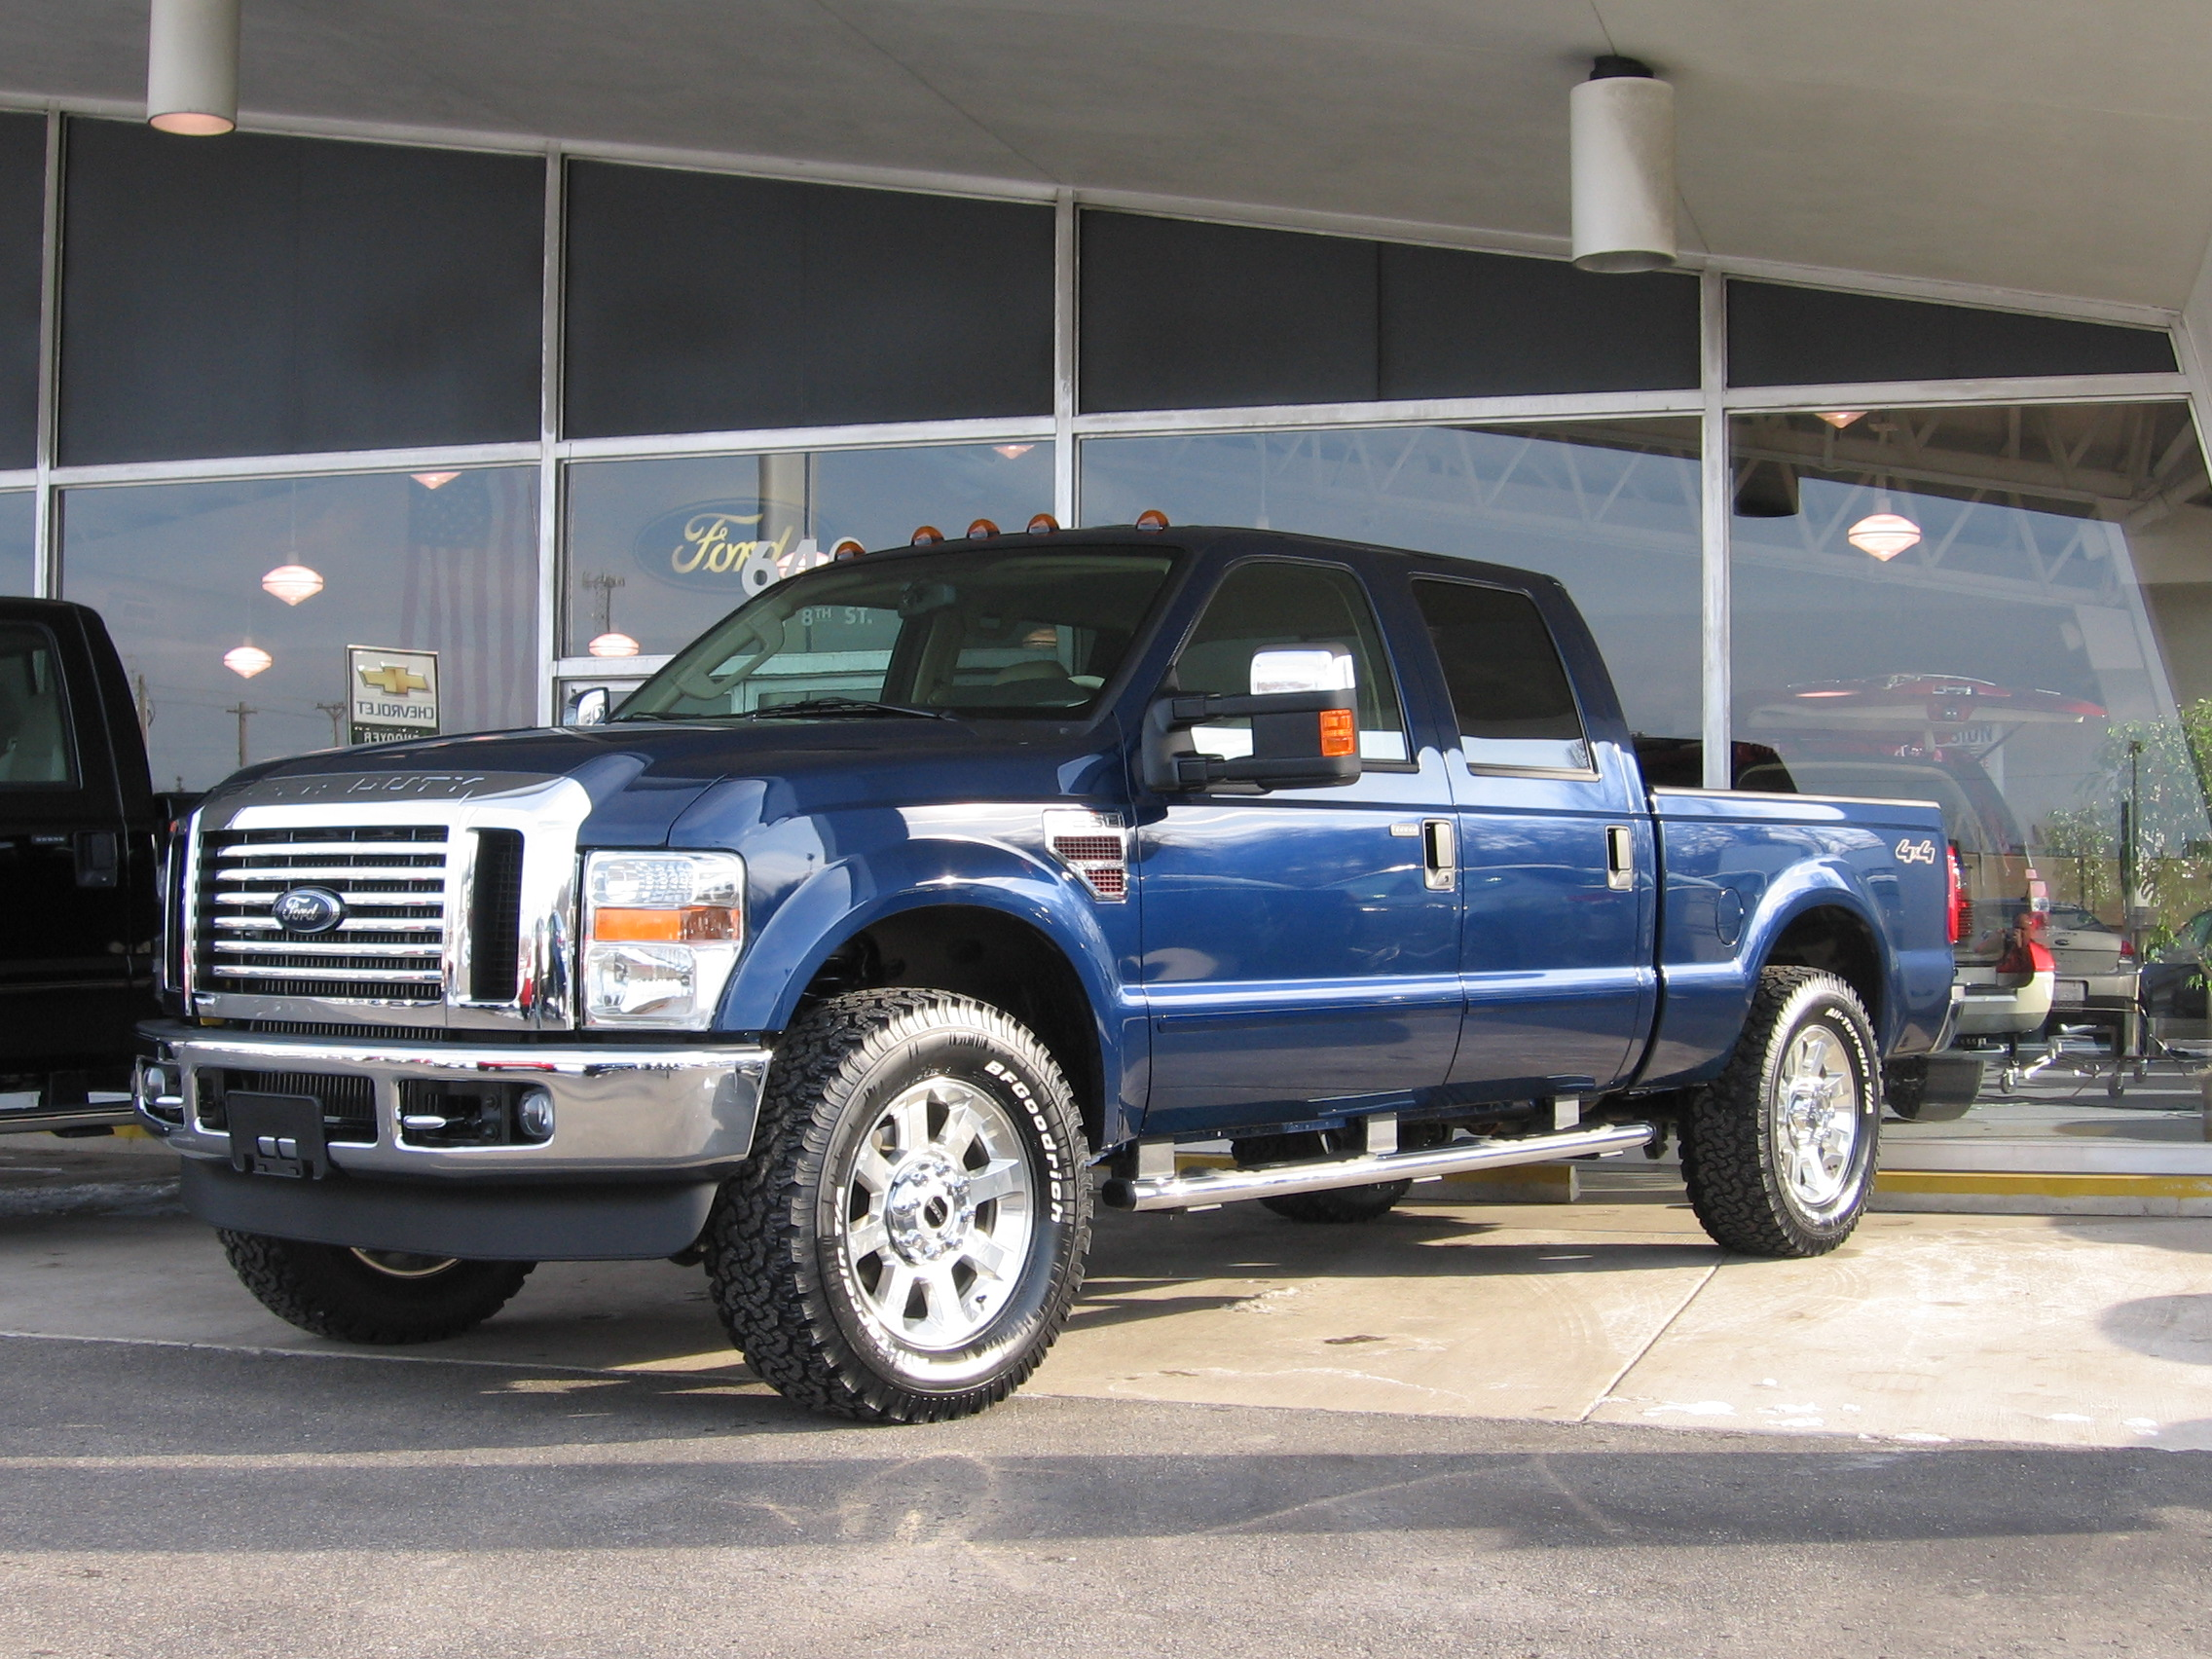 Ford F350 King Ranch >> Time to show your ride. - Page 4 - Diesel Forum ...